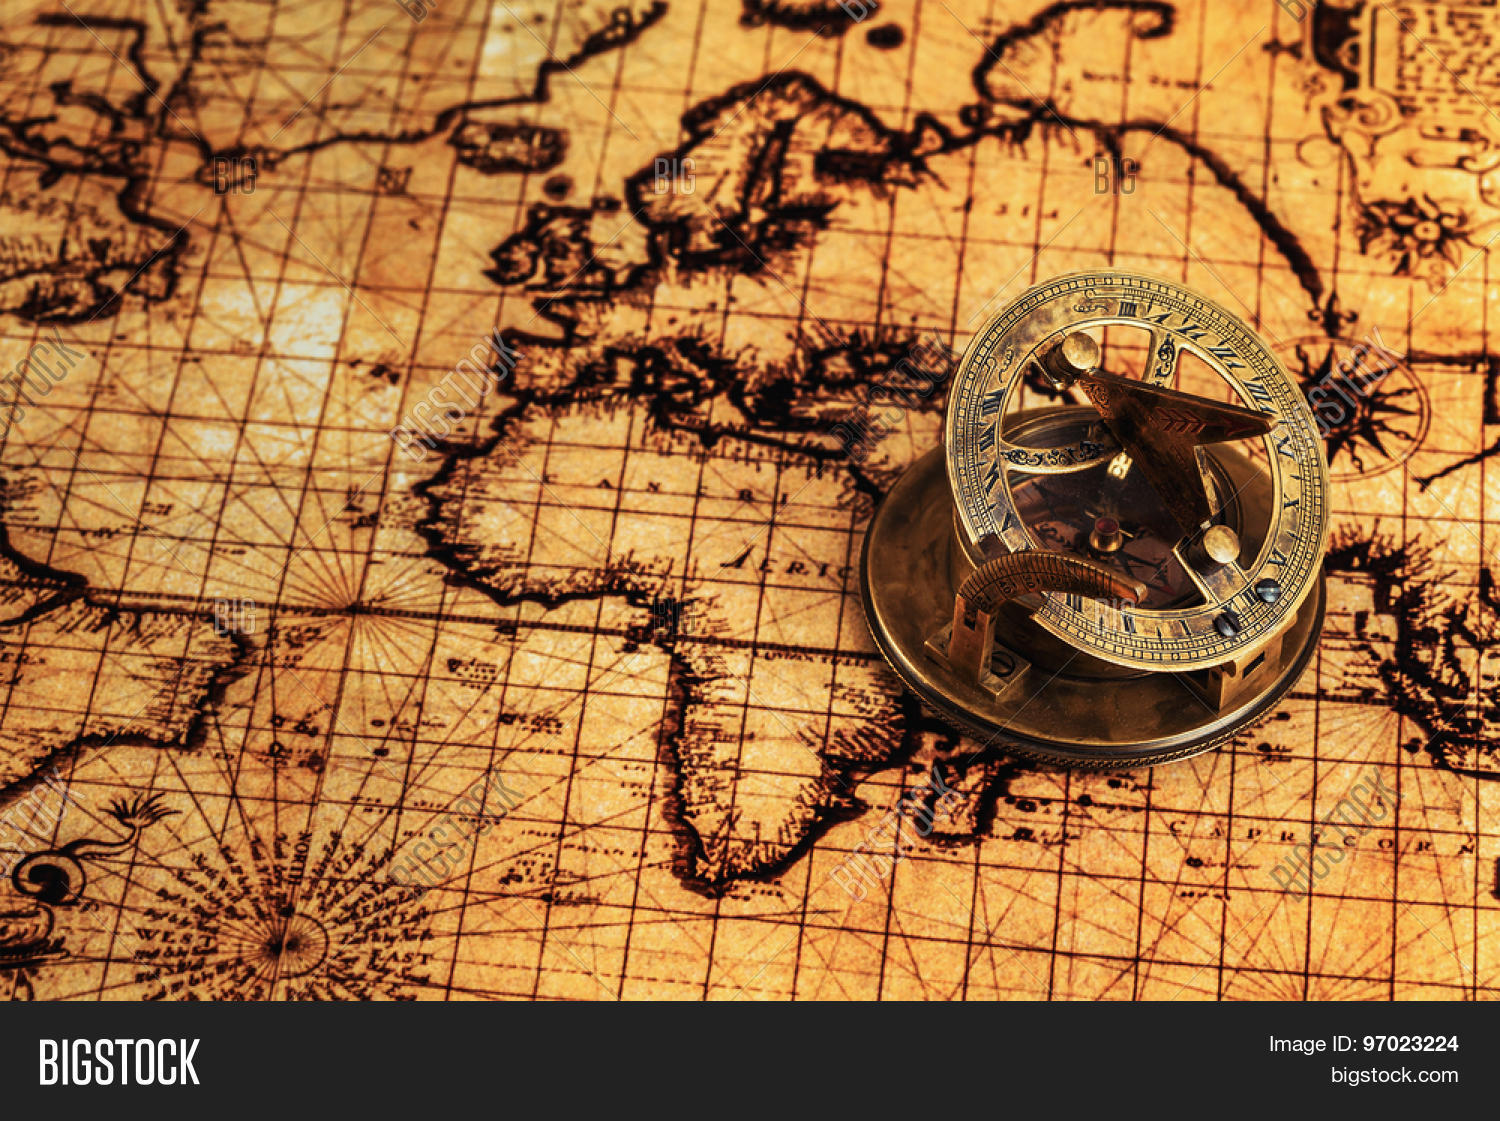 Travel geography image photo free trial bigstock travel geography navigation concept background old vintage retro compass with sundial on ancient world map gumiabroncs Images